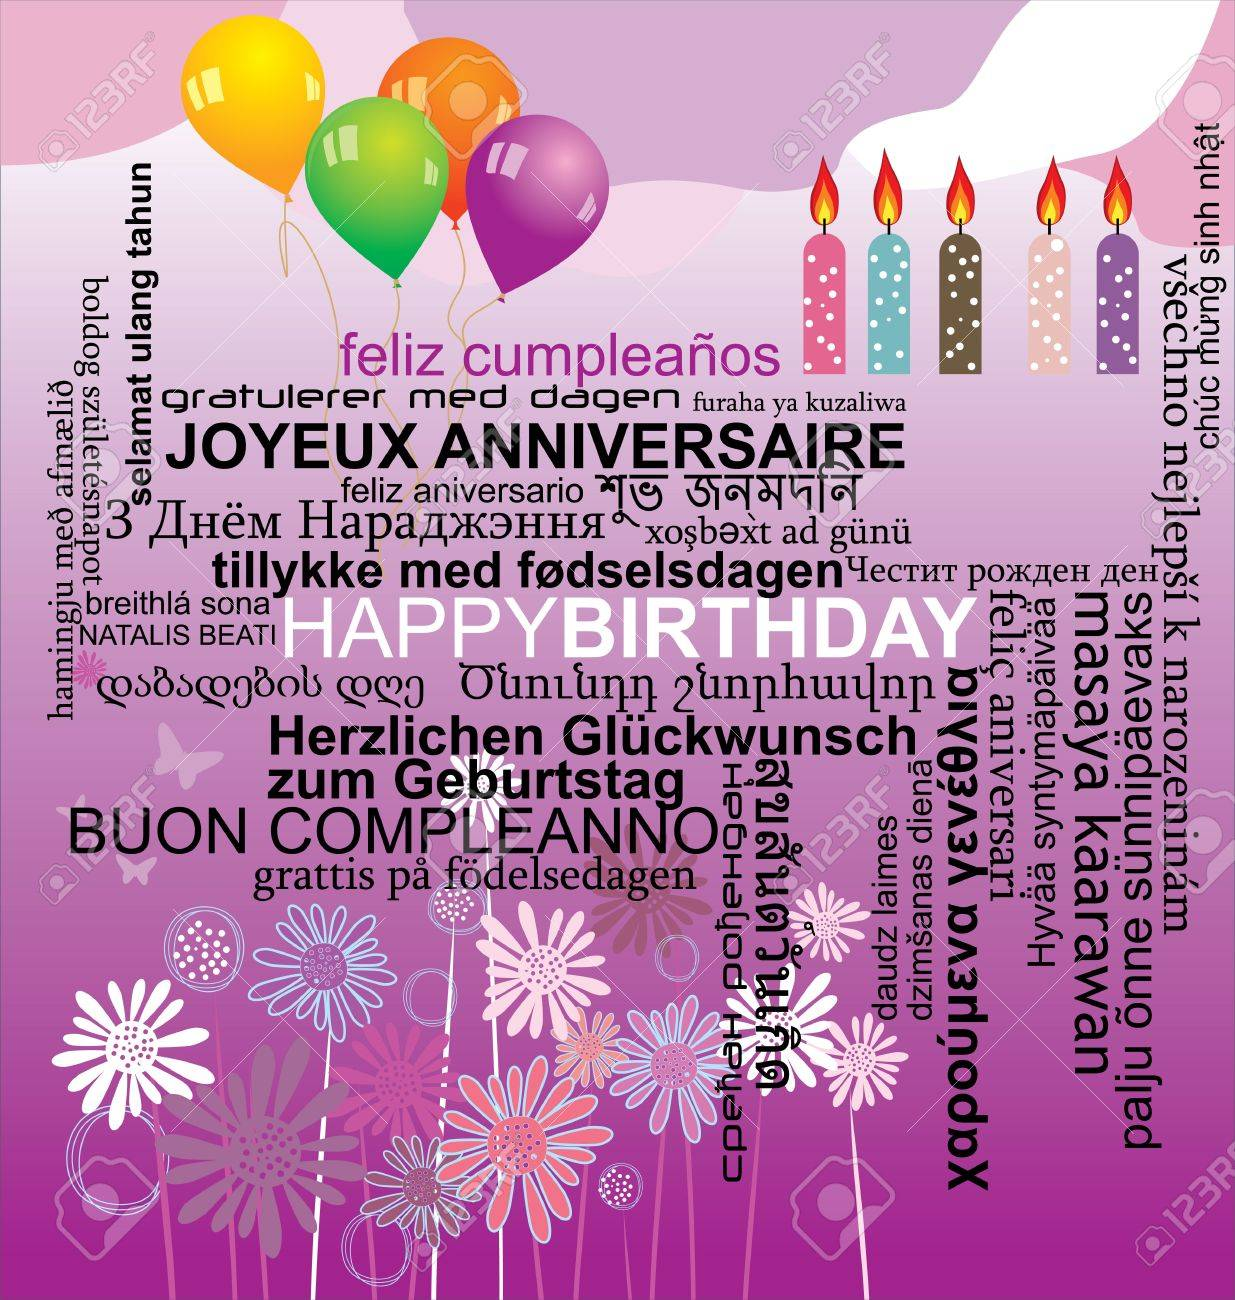 Happy Birthday Word Collage Background Royalty Free Cliparts ...